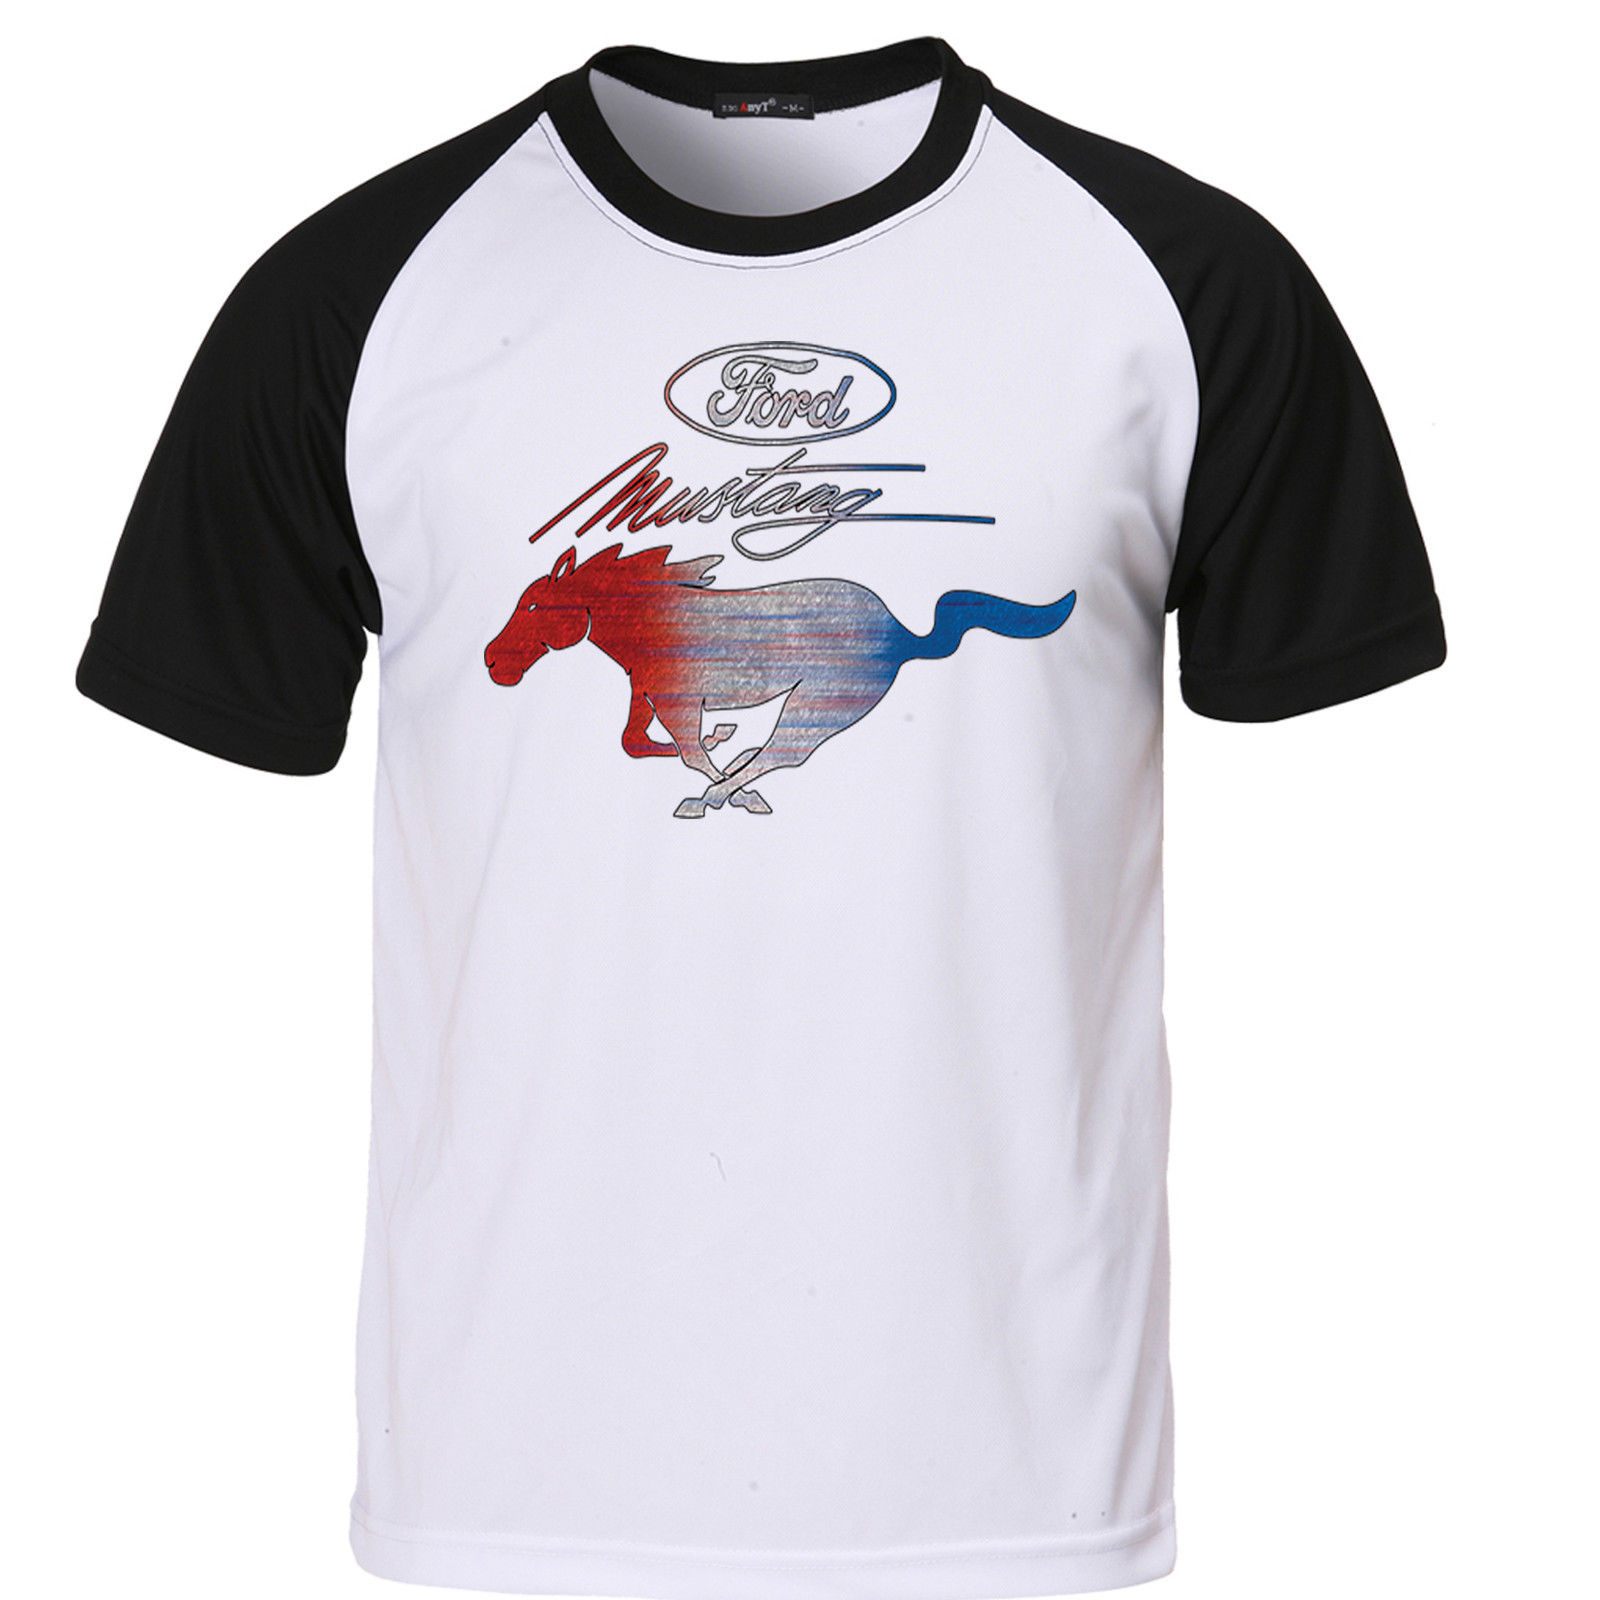 Mens Ford Mustang T Shirt Pony Logo Genuine American Classic Muscle